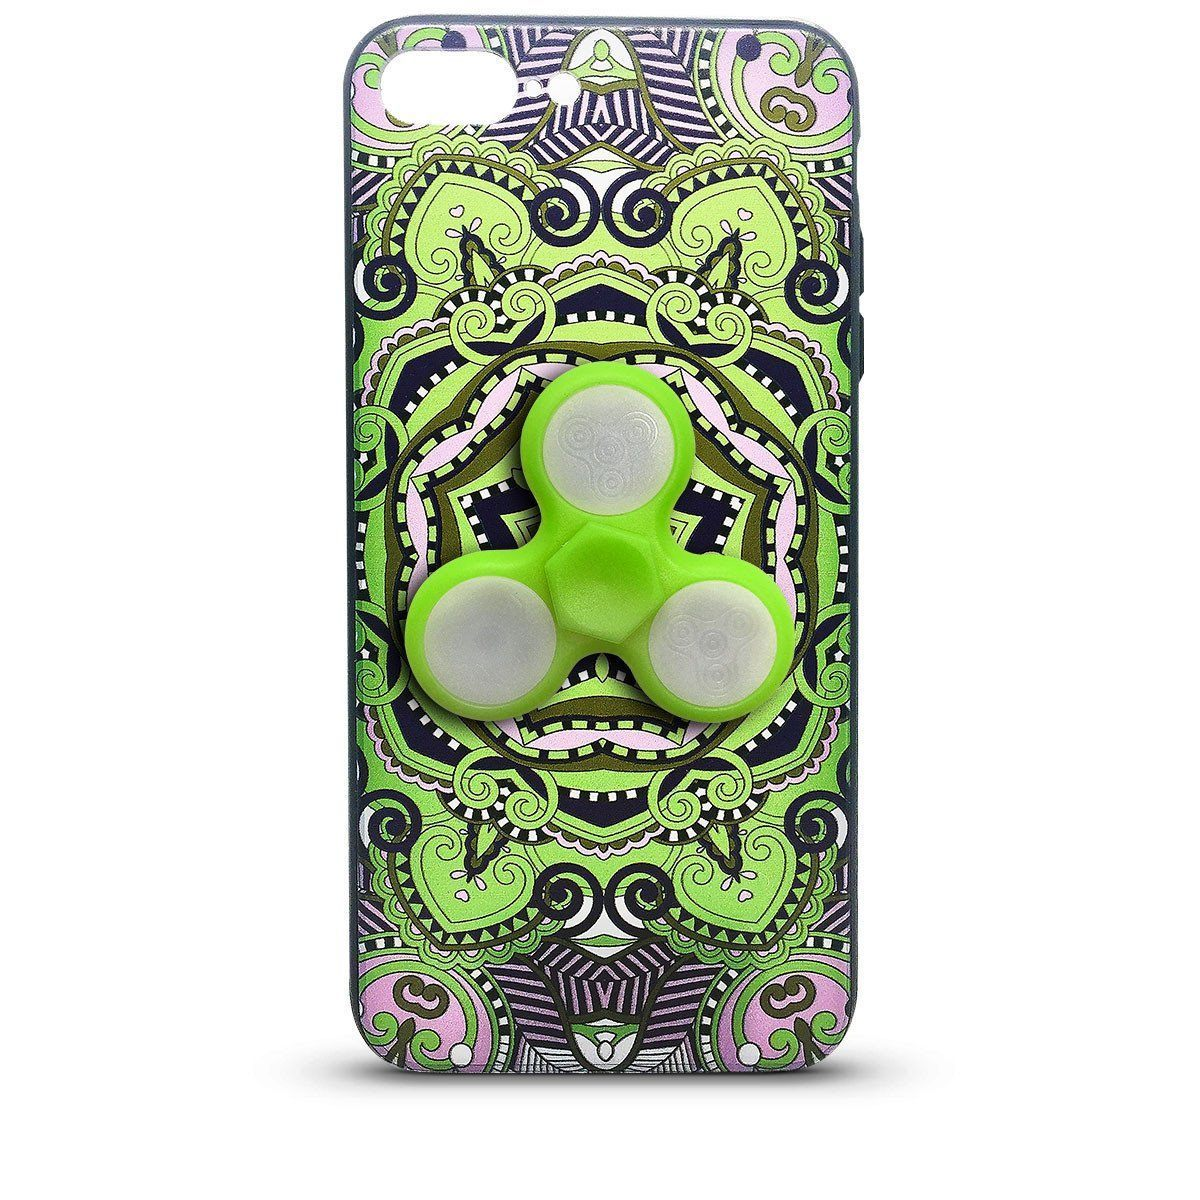 Fidget Case for iPhone 7 /8 - Green